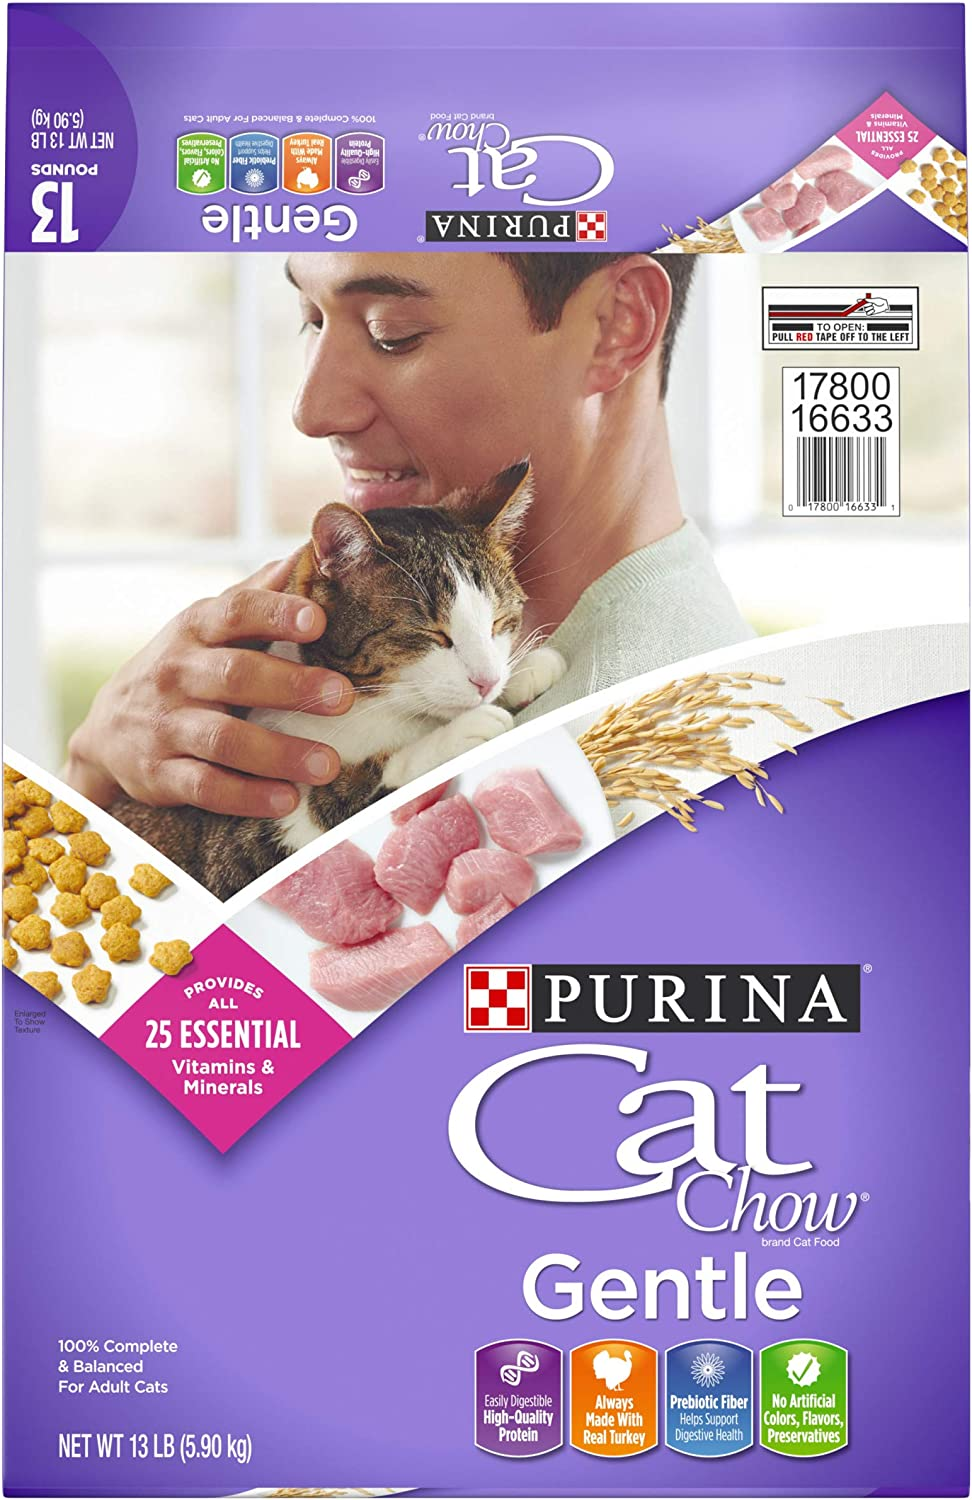 Purina Cat Chow Gentle Sensitive Stomach Adult Dry Cat Food